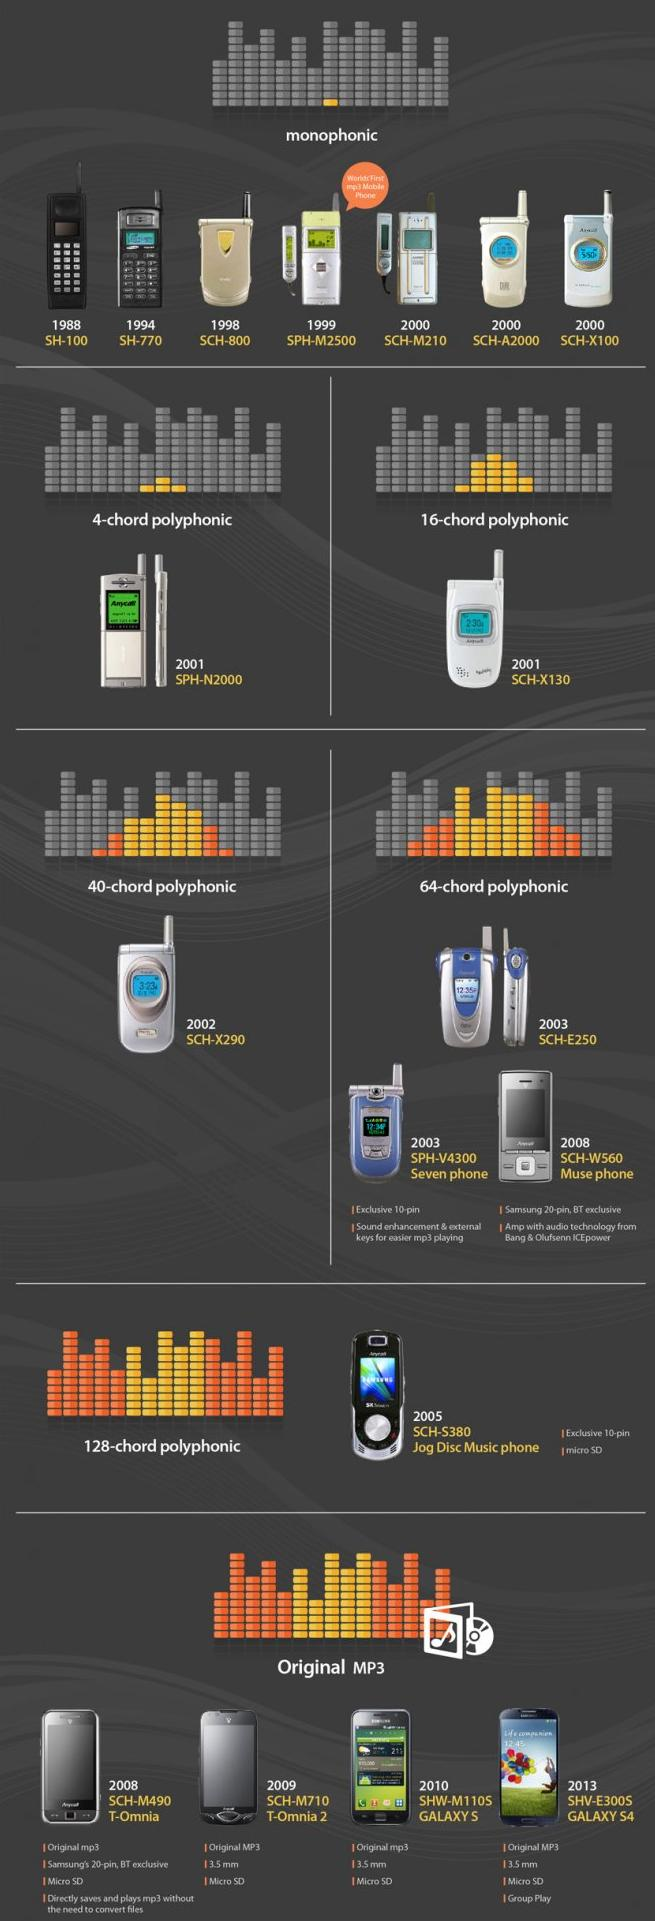 history-of-samsung-evolution.jpg